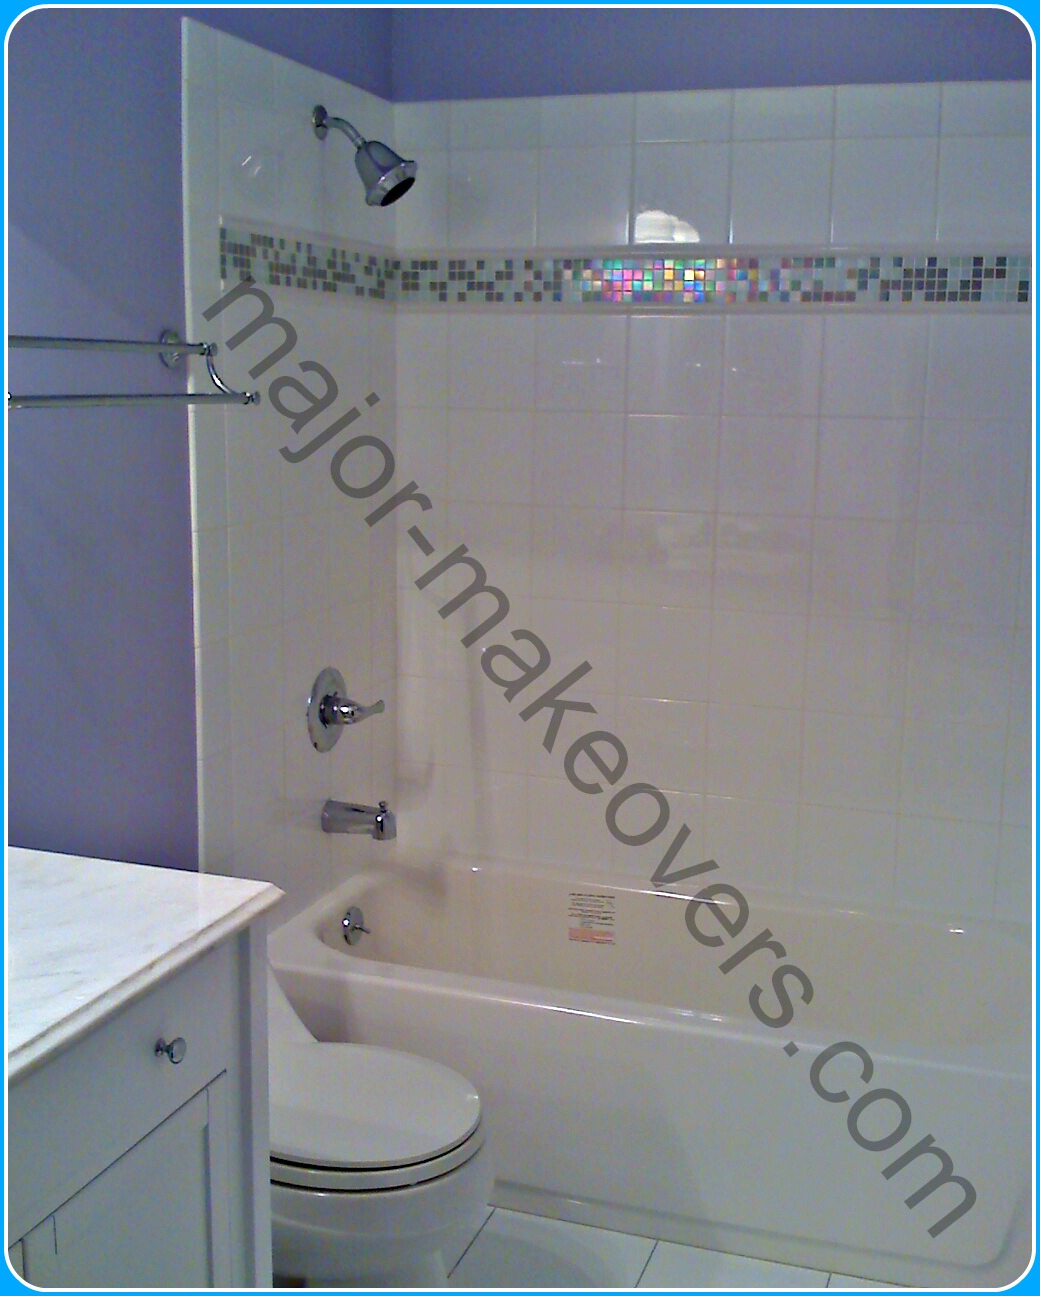 6x6 white ceramic tile installed on tub surround walls with matching length bullnose to finish edges. Decorative strips of 2 tone mosaic at eye-level with white pencil tile.